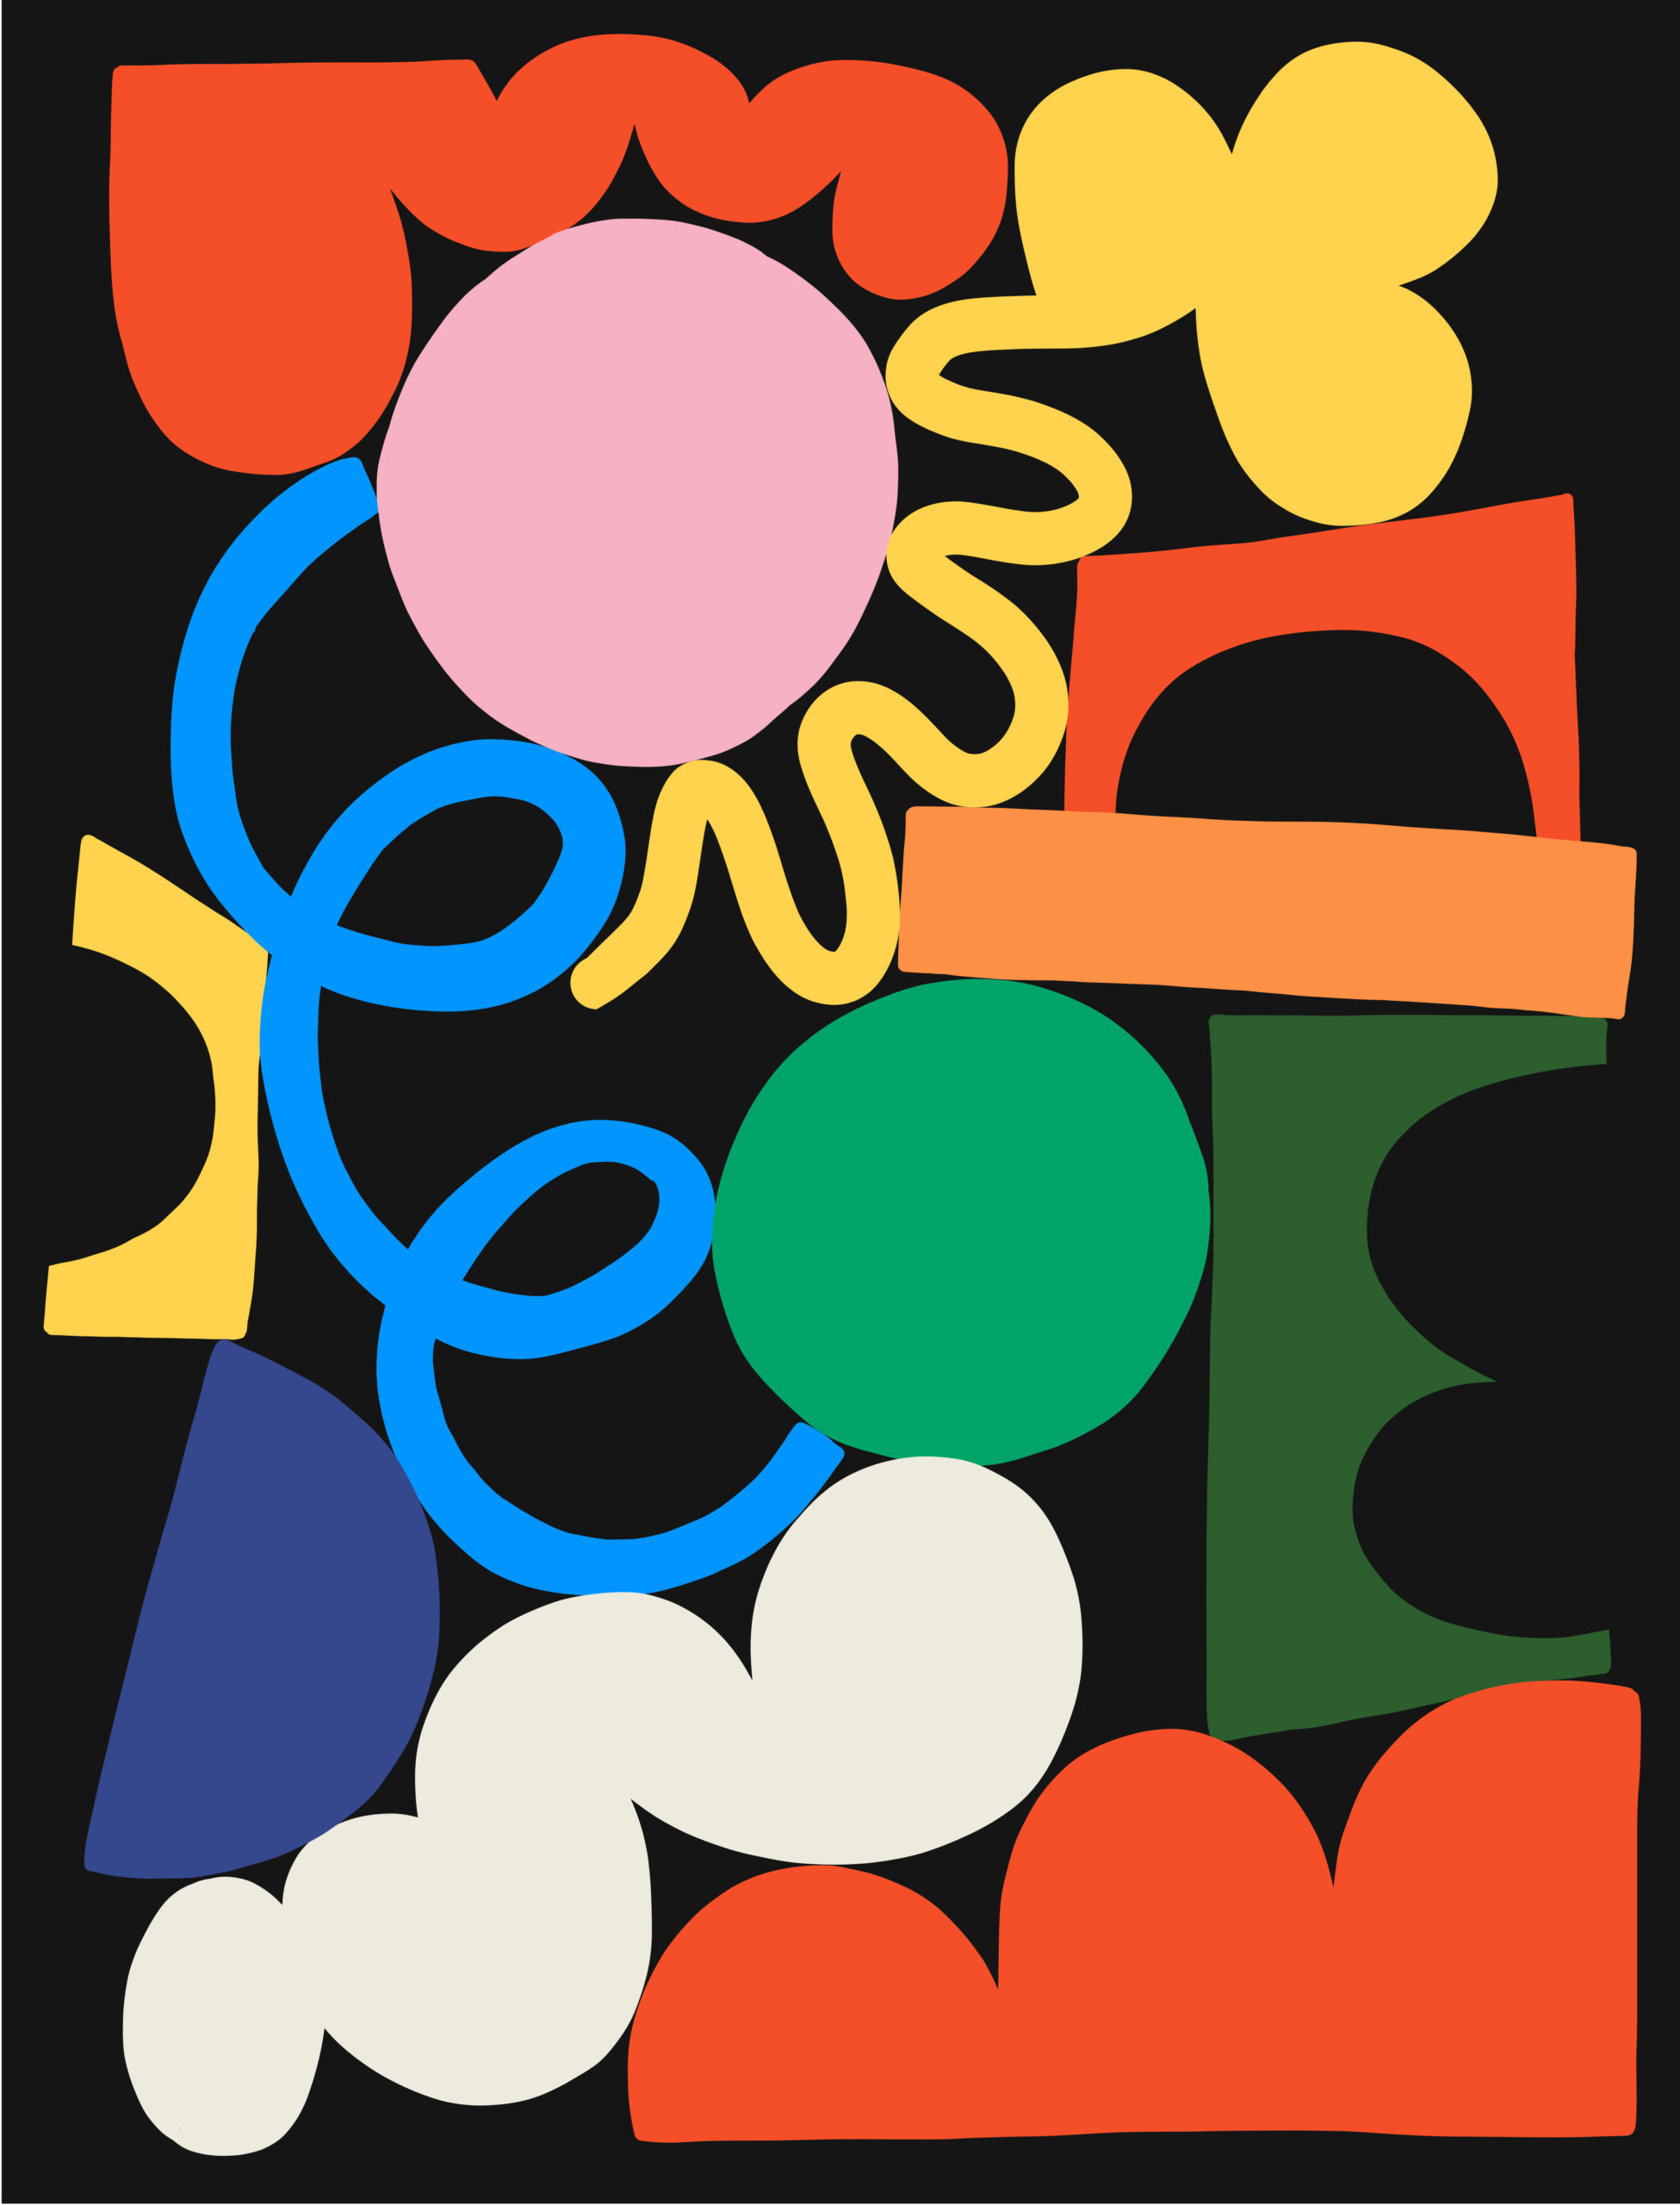 Micke Lindebergh, Shapes, 2020. Courtesy the artist